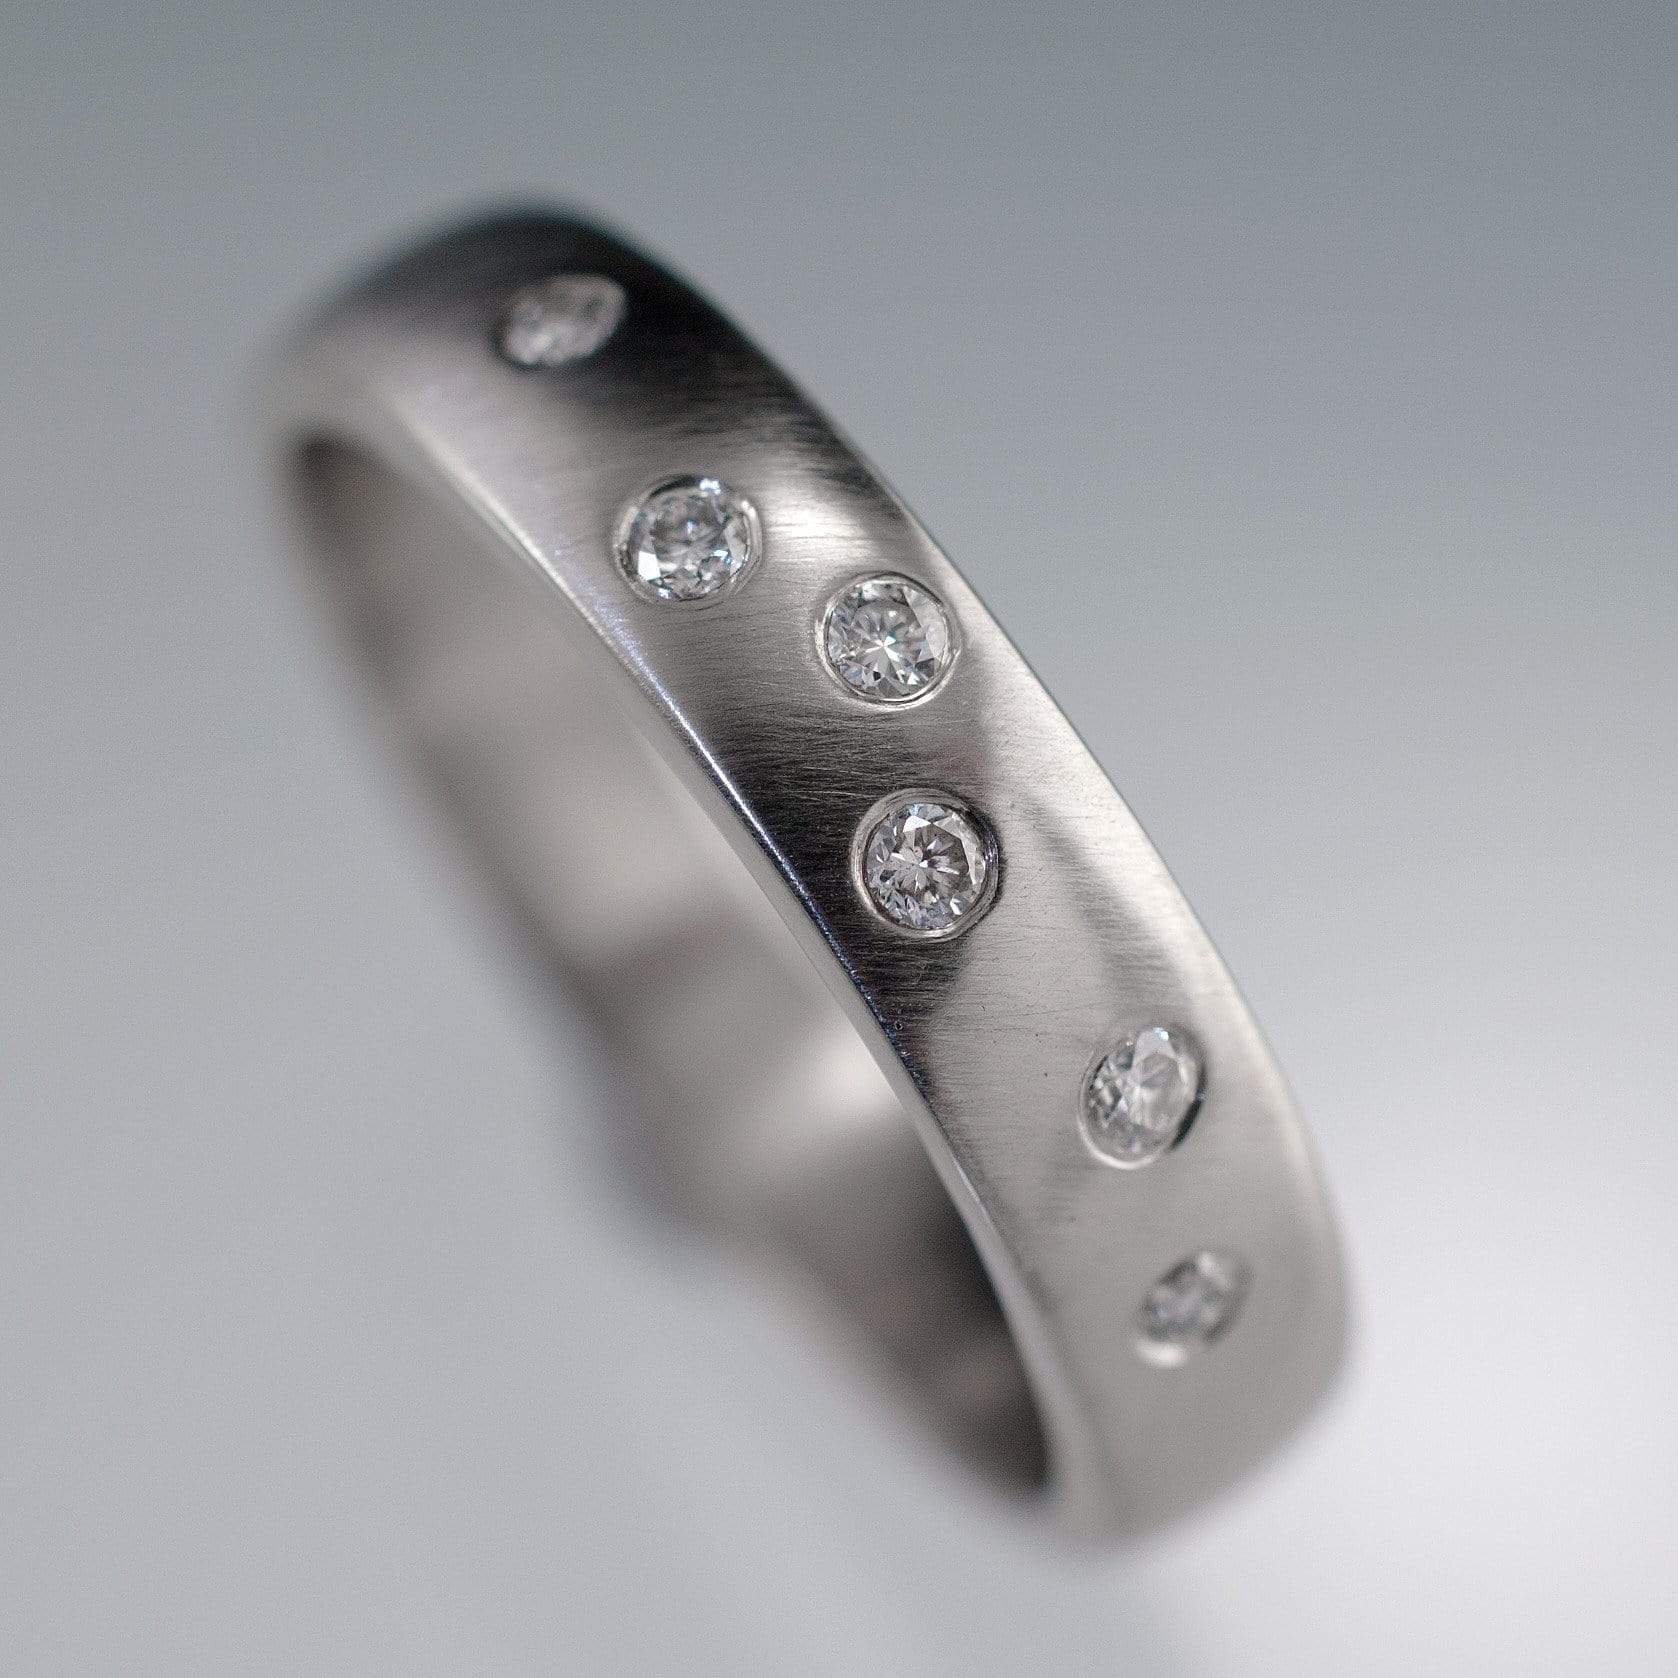 Diamond Wedding Ring, Random Diamond Flush Set Band - by Nodeform